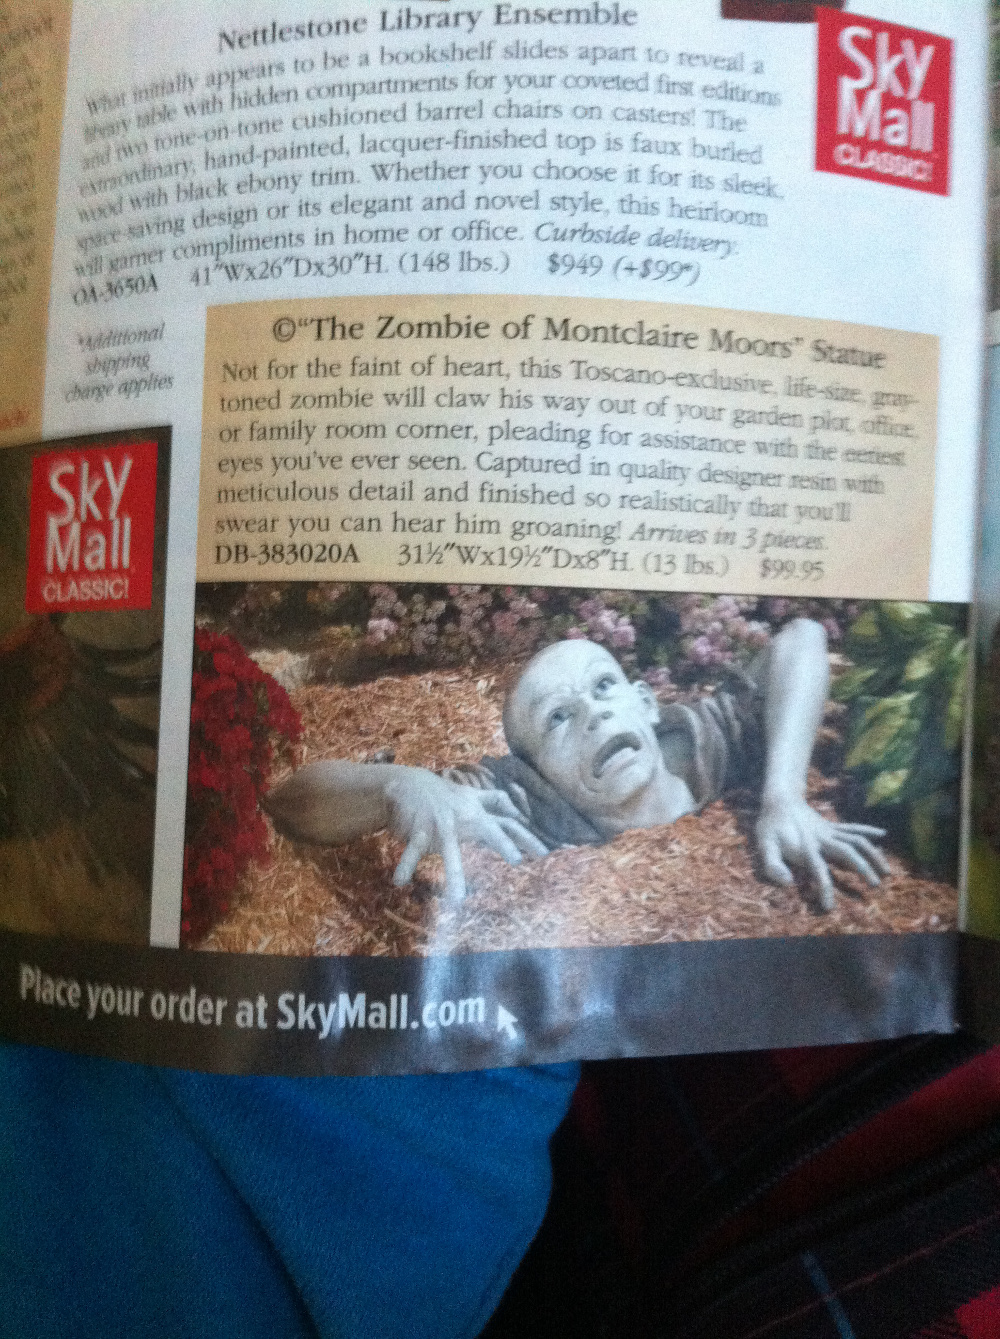 Tired of those boring garden gnomes, how about a horrific mould of a zombie re-emerging? * Arrives in 3 pieces